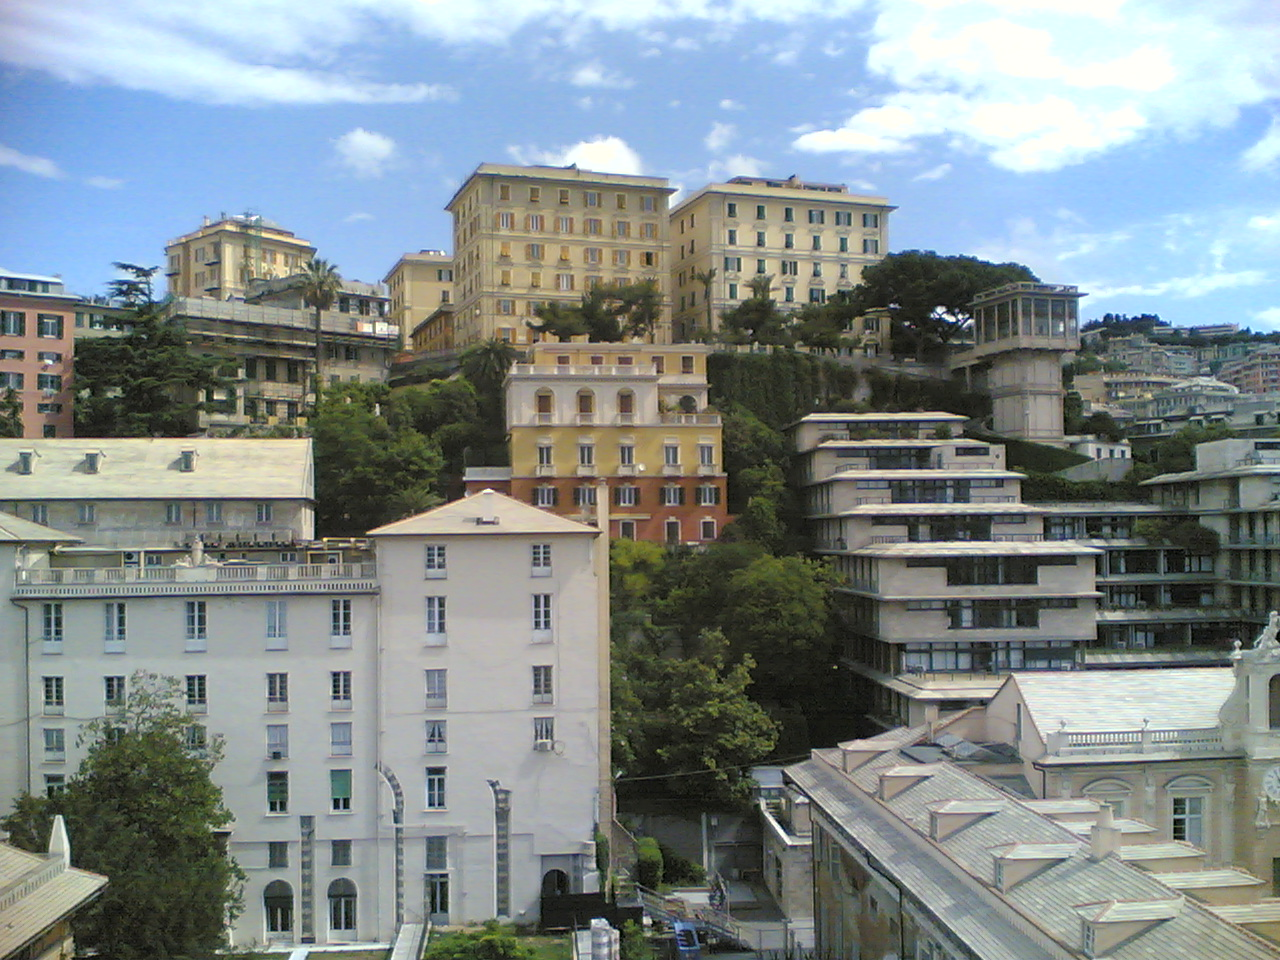 Genoa: Le Strade Nuove and the system of the Palazzi dei Rolli